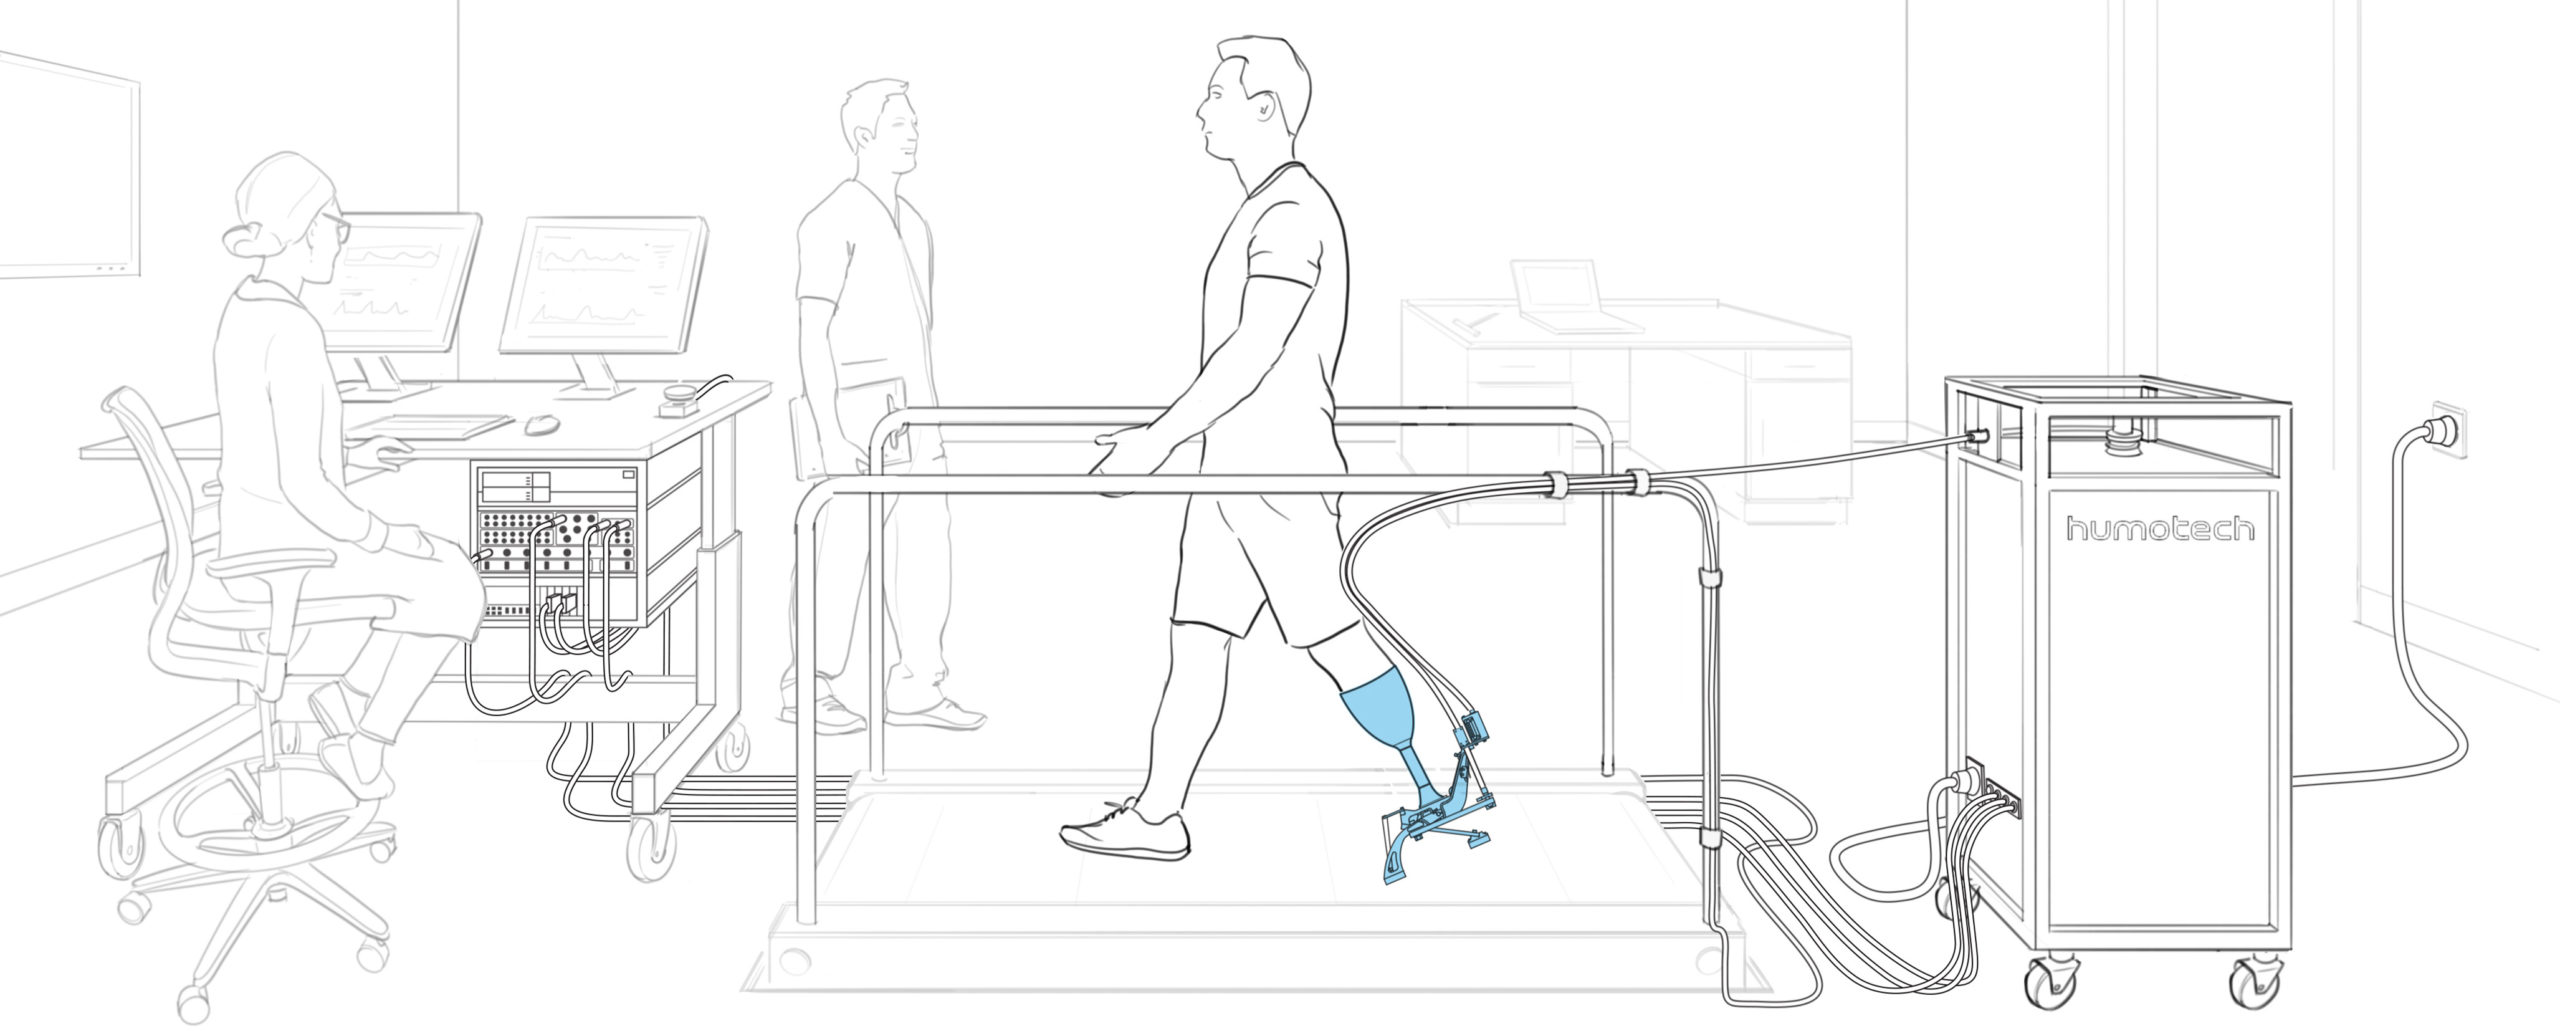 Full-Size Caplex System with PRO-001 Ankle-Foot Prosthesis